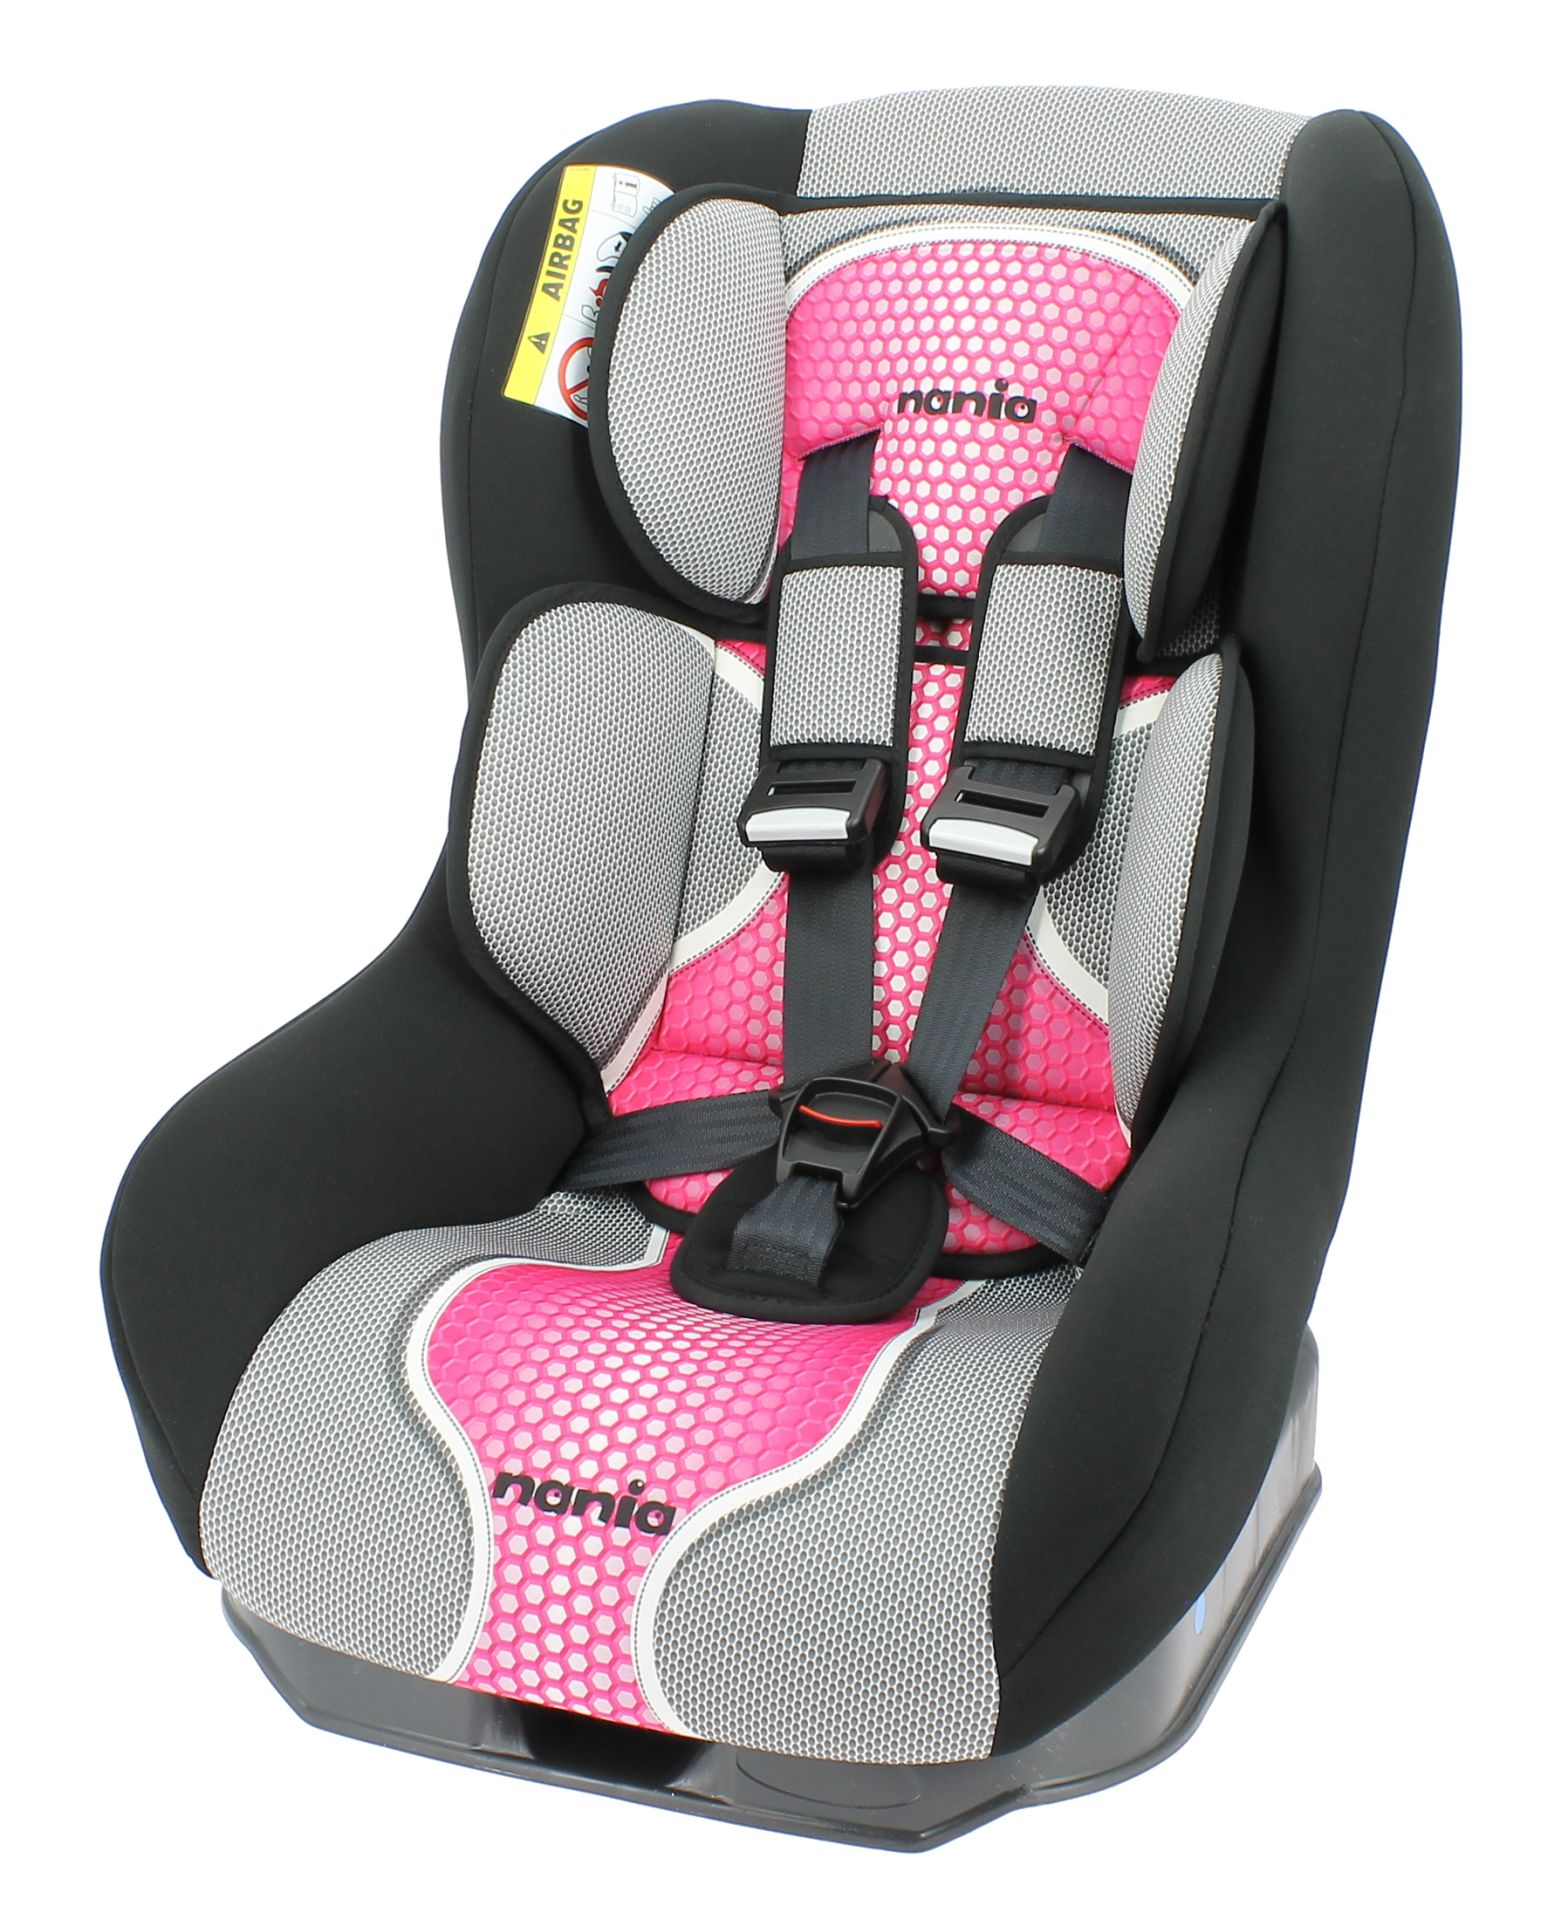 osann child car seat safety plus nt buy at kidsroom. Black Bedroom Furniture Sets. Home Design Ideas